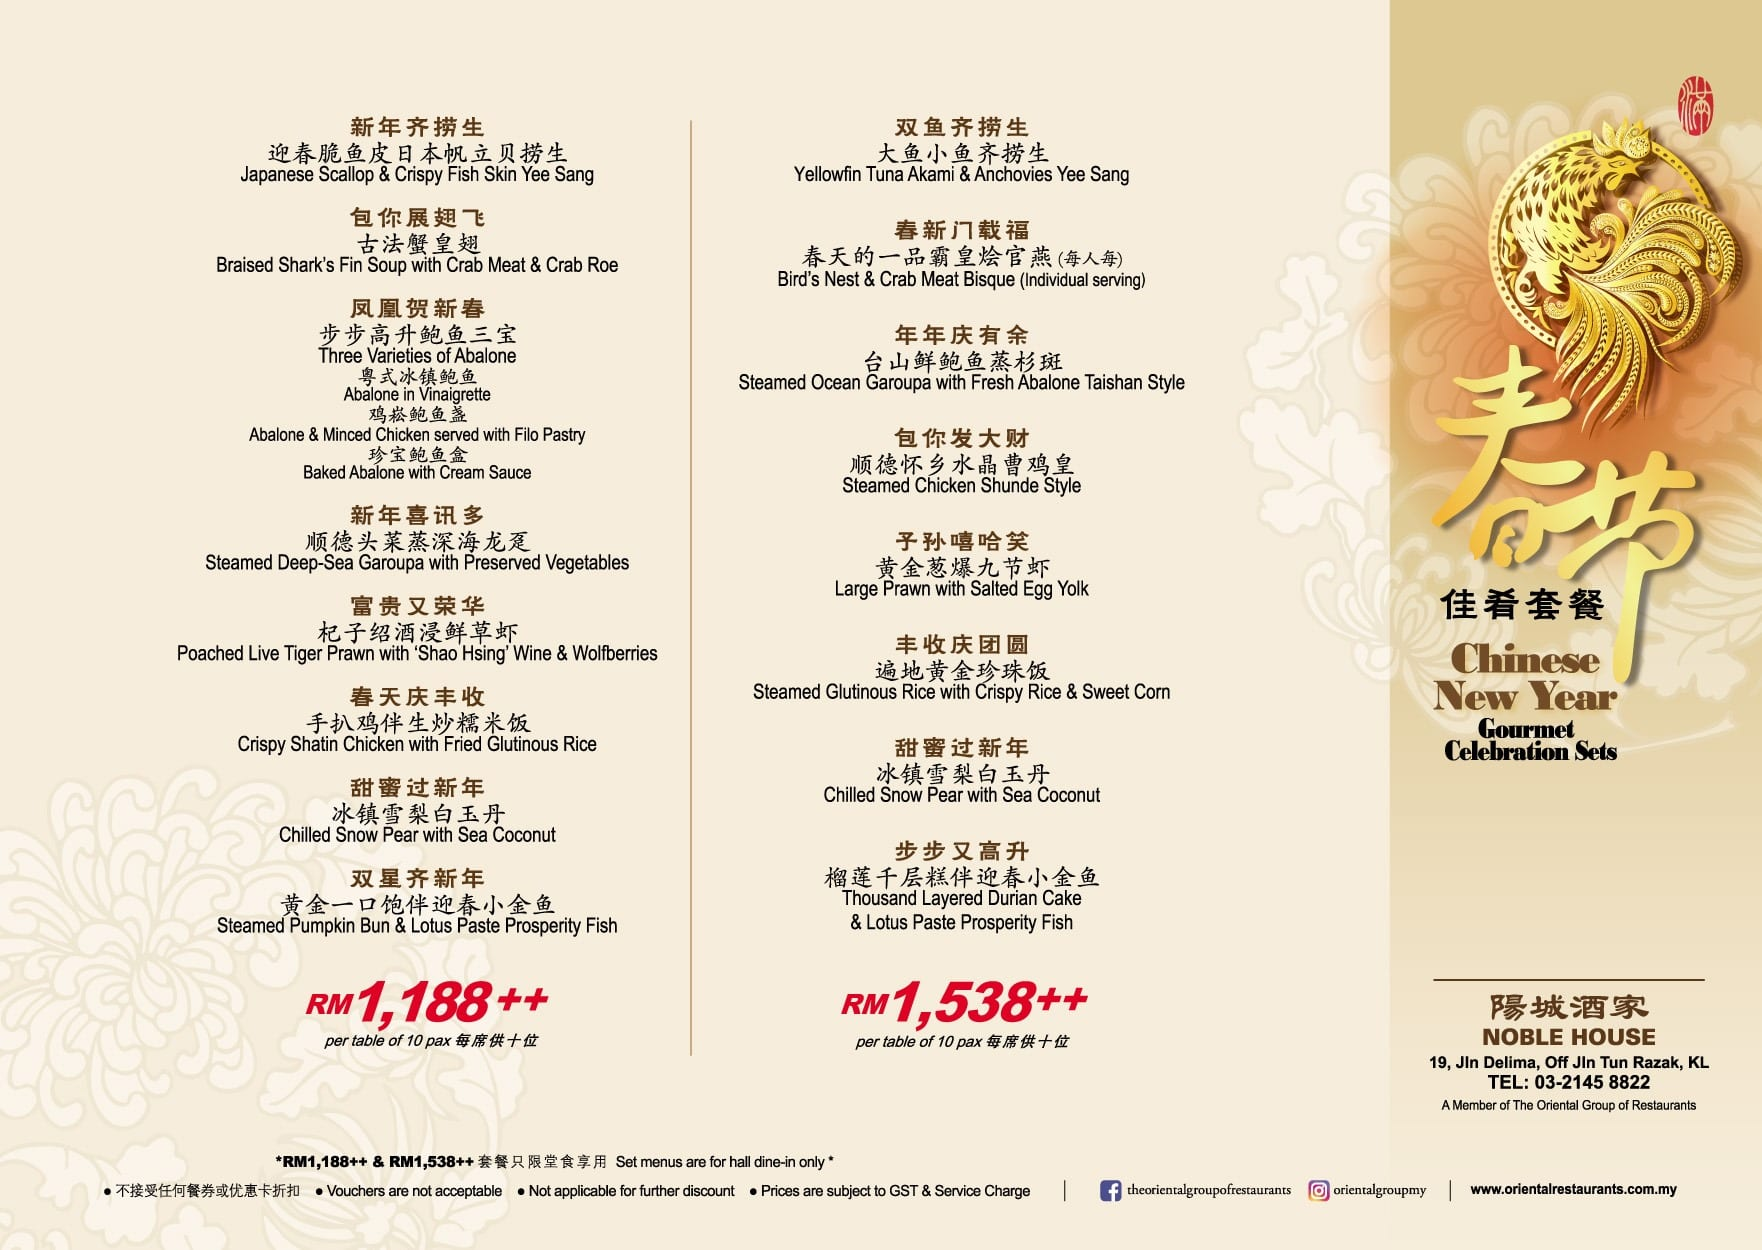 2017 Chinese New Year Set Menus of 10 Restaurants in Klang Valley Noble House